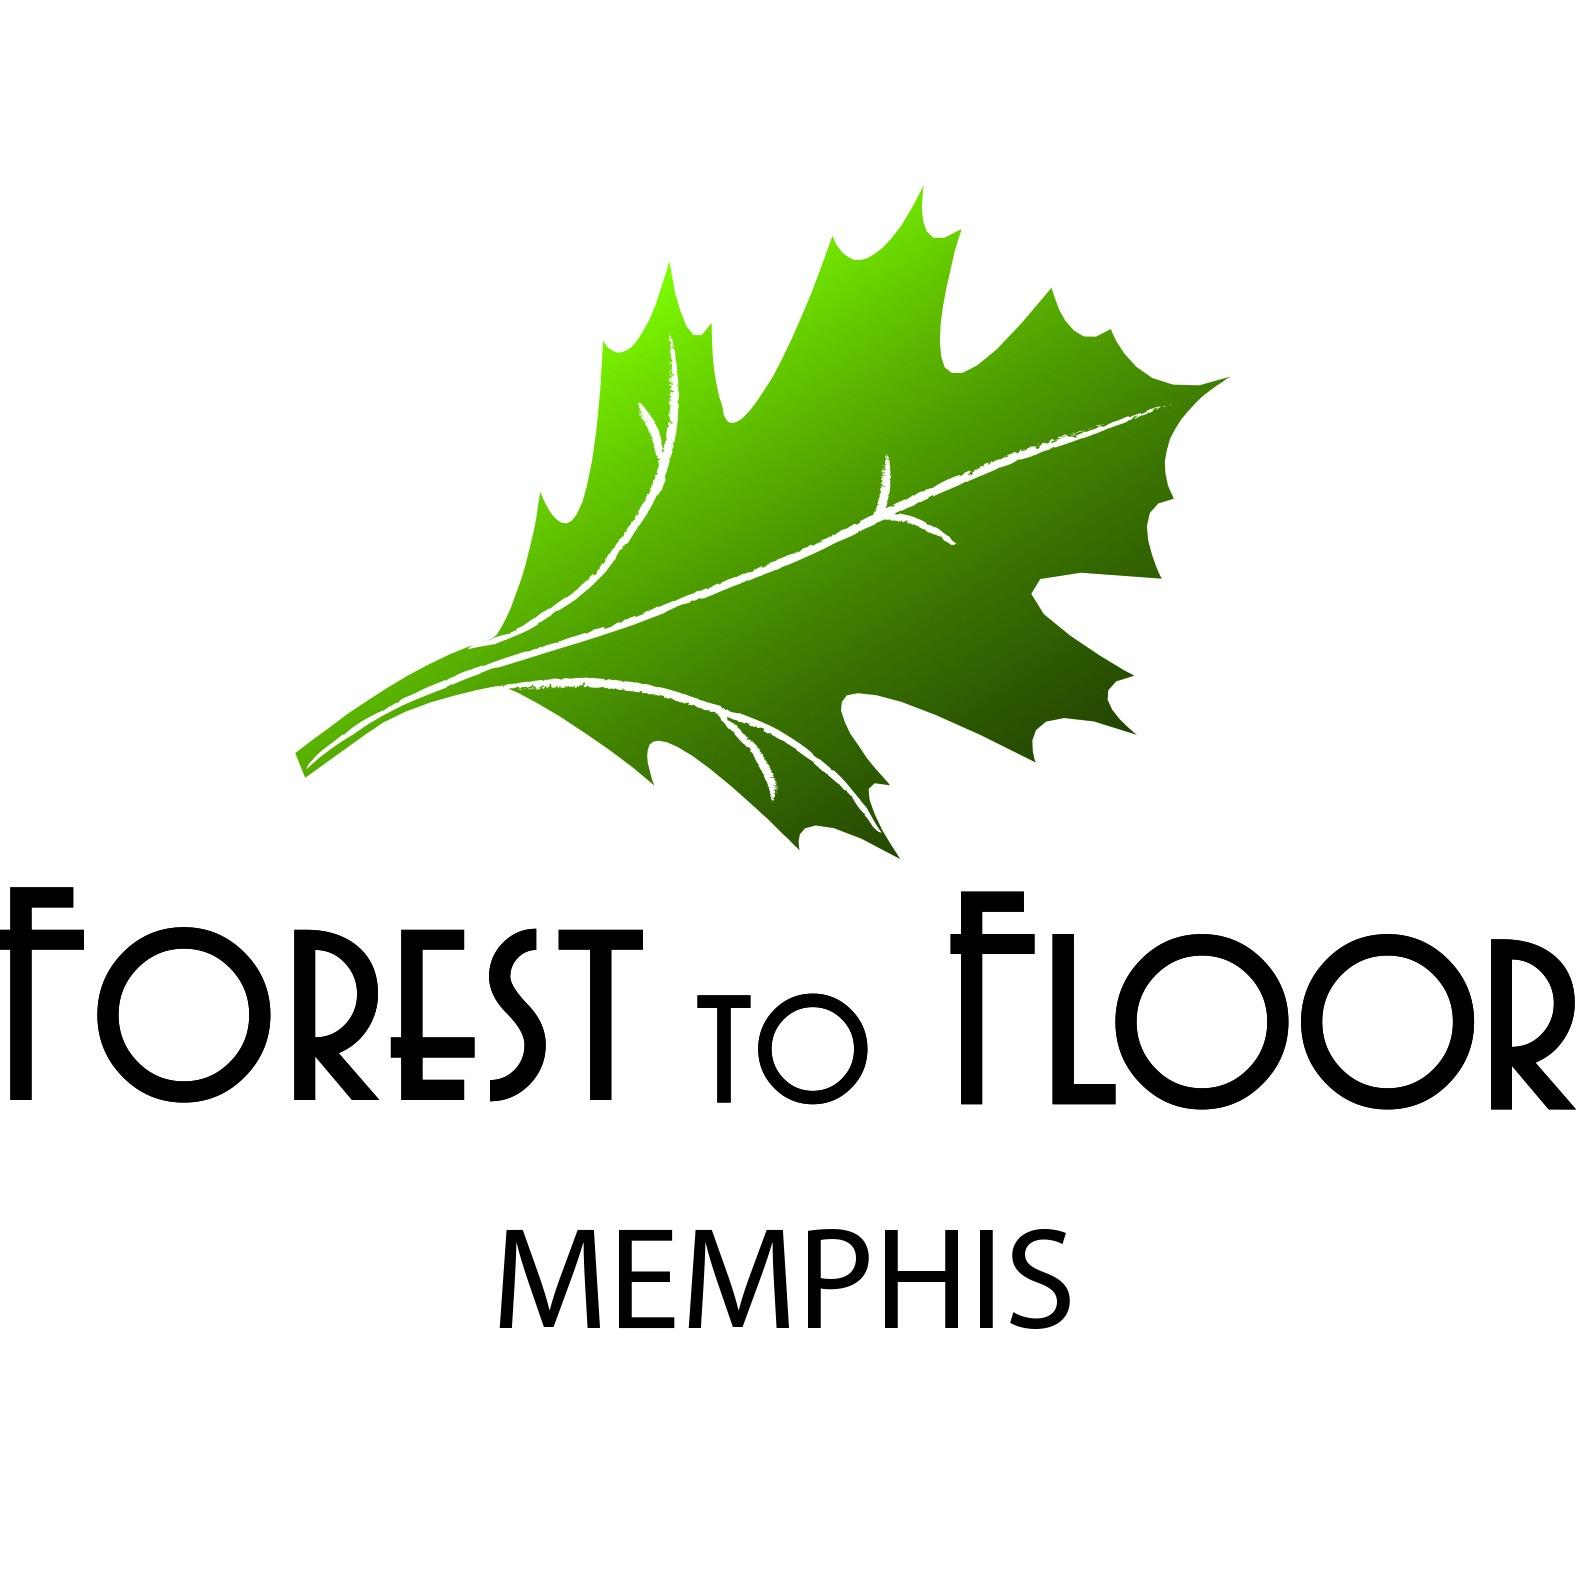 Forest to Floor